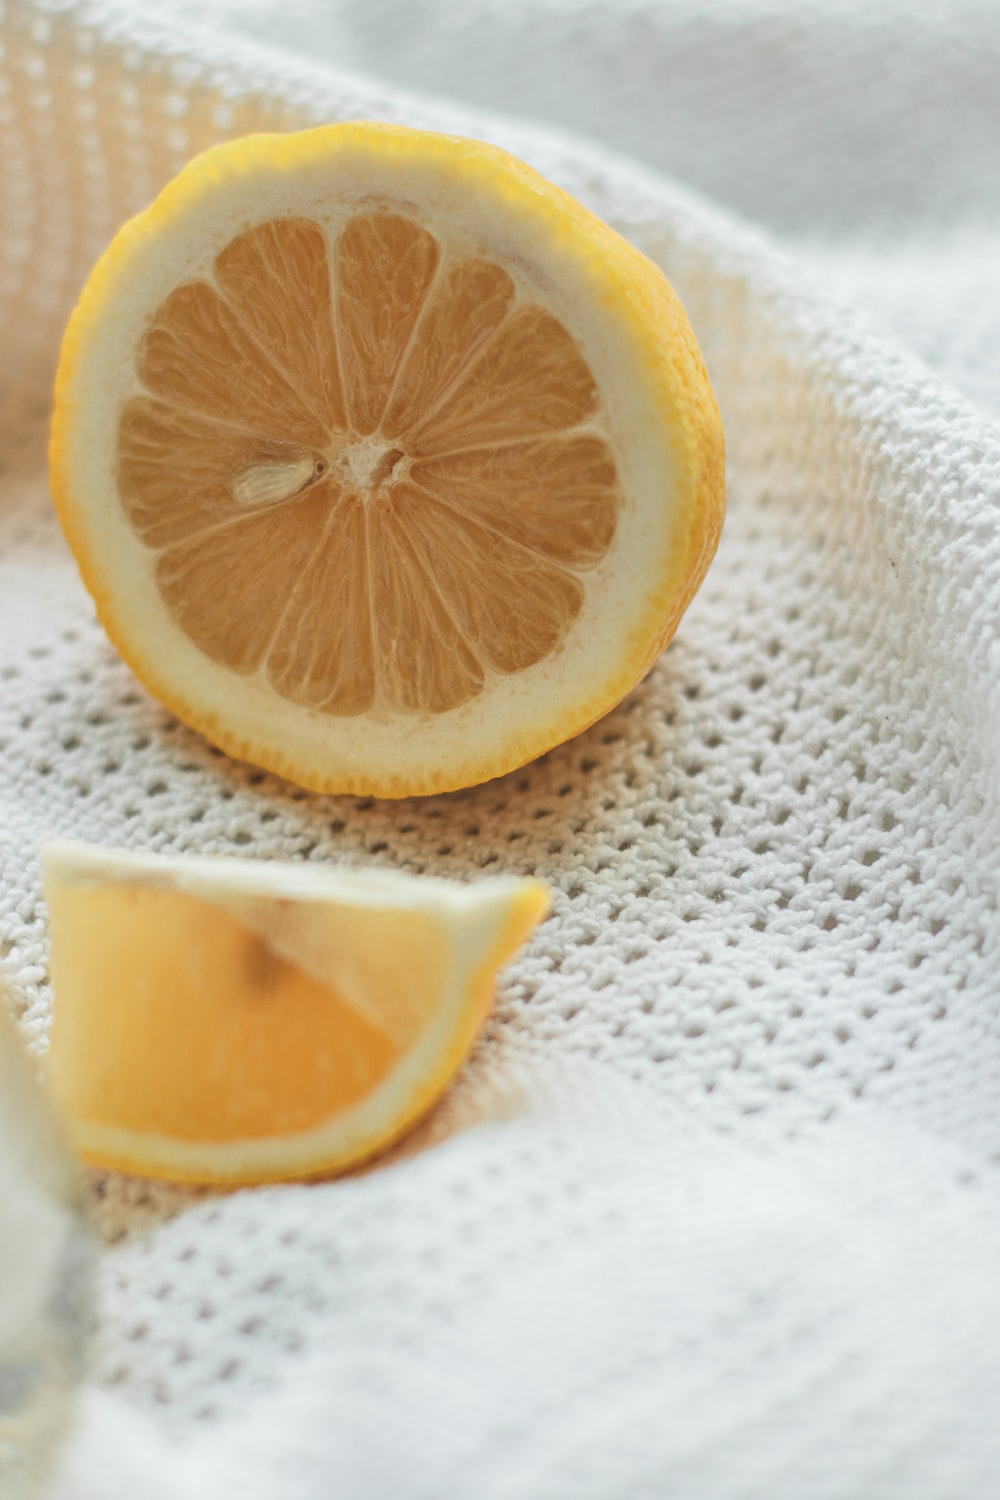 sliced lemon on white textile